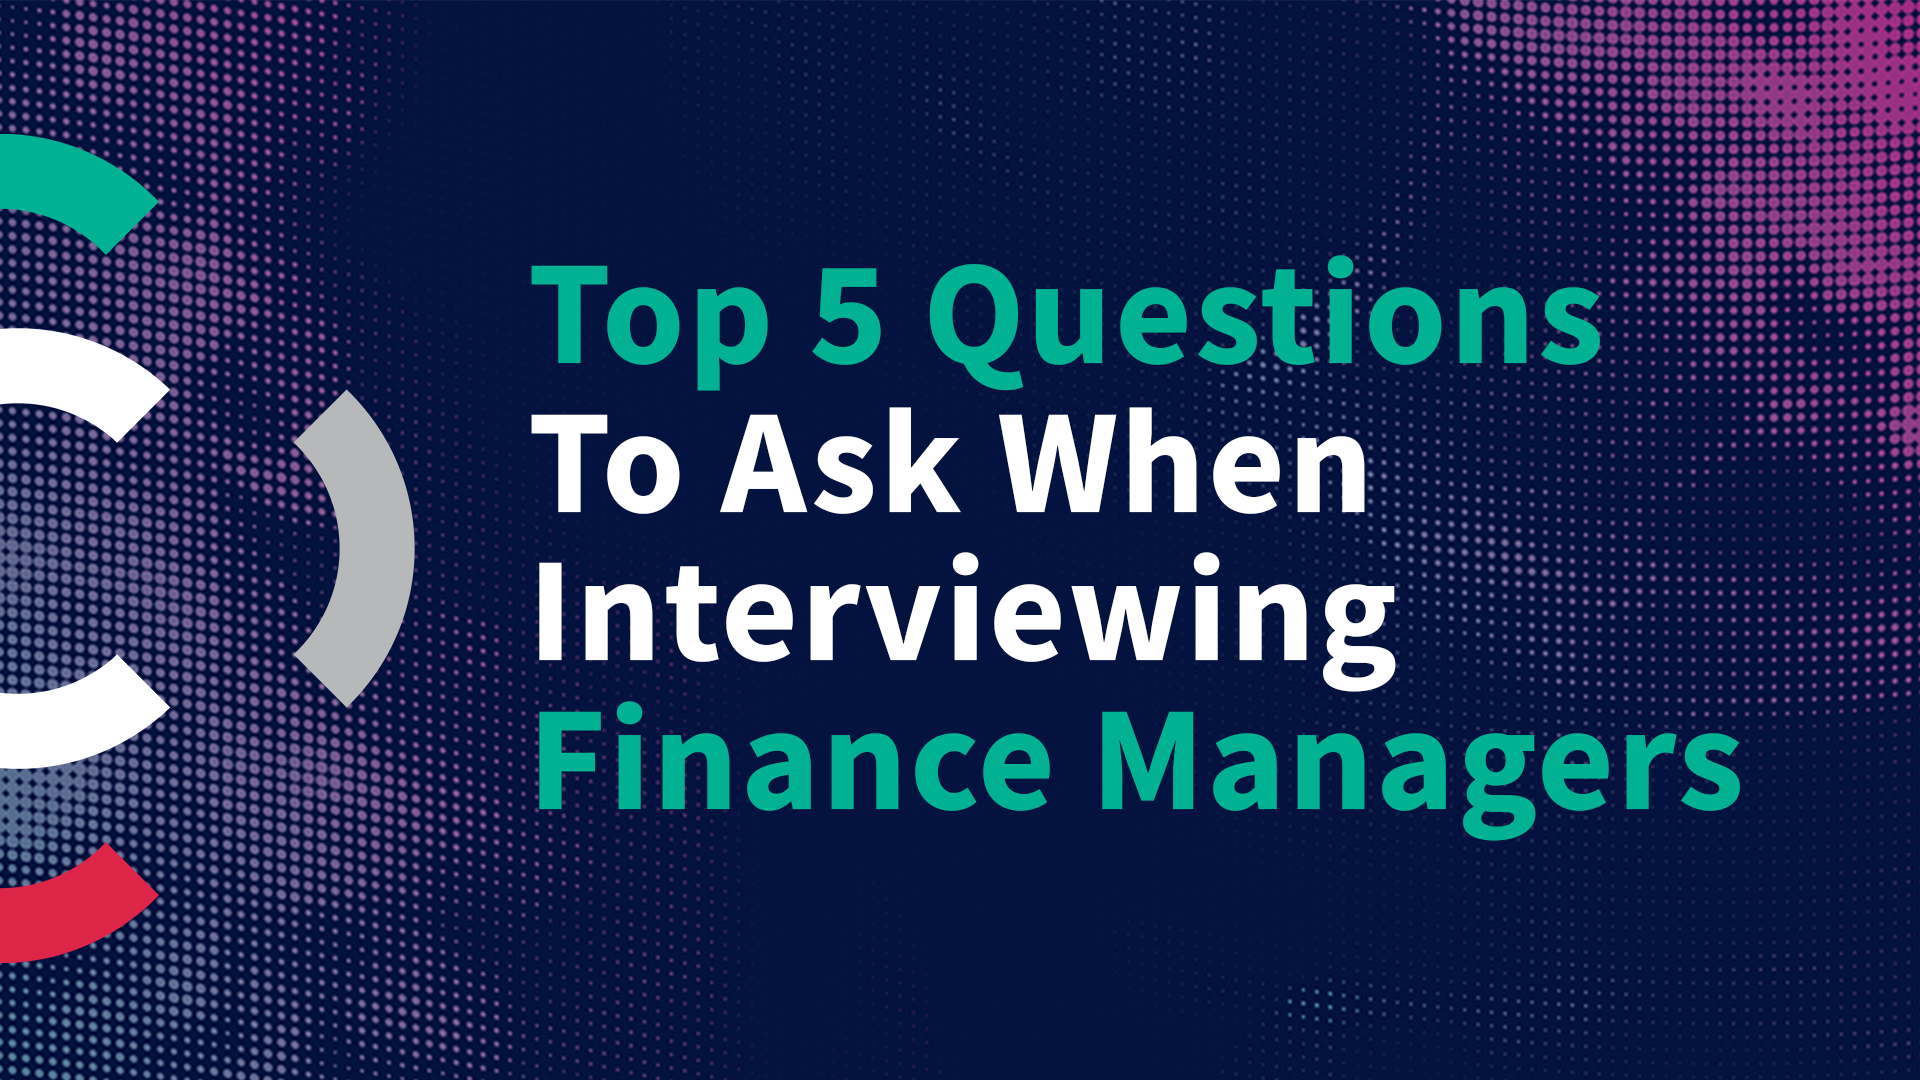 Top 5 Questions To Ask Finance Managers